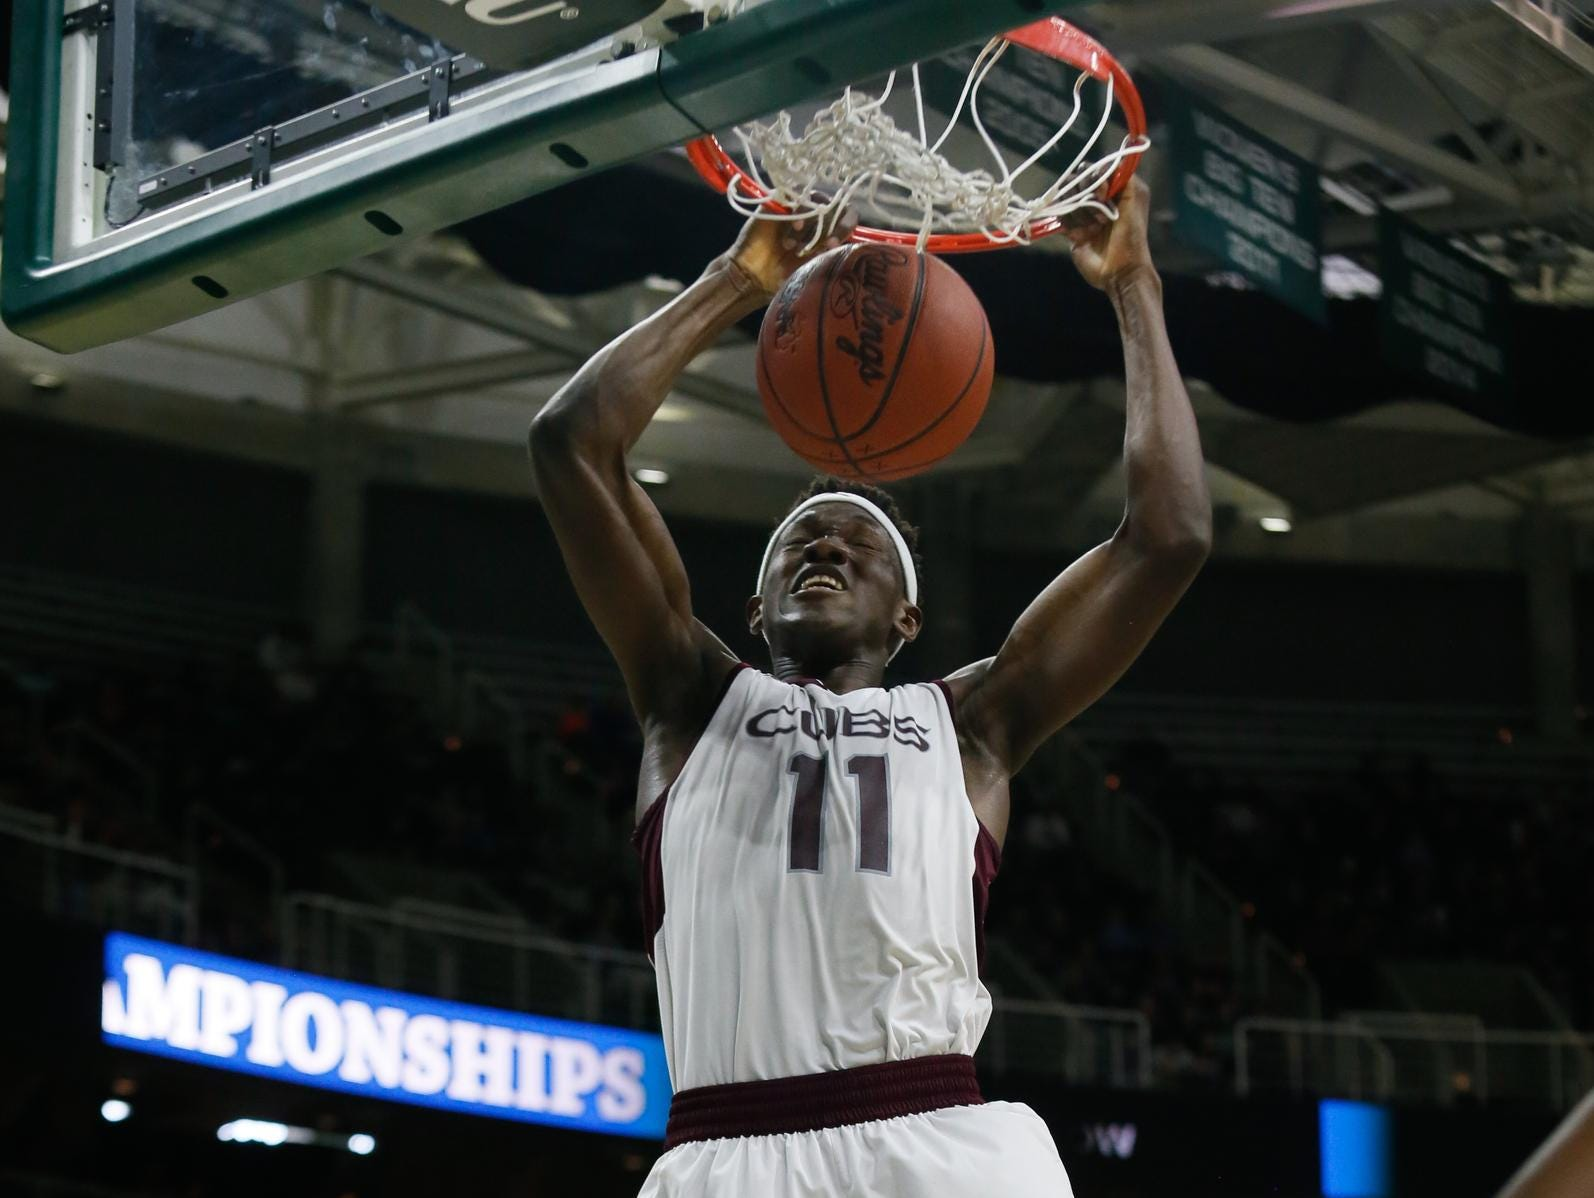 Detroit U-D Jesuit's Gregory Eboigbodin dunks the ball against Macomb Dakota during the MHSAA boys basketball Class A semifinals at the Breslin Center in East Lansing, Mich. on Friday, March 25, 2016. Eboigbodin scored 13 points in the 72-51 win.